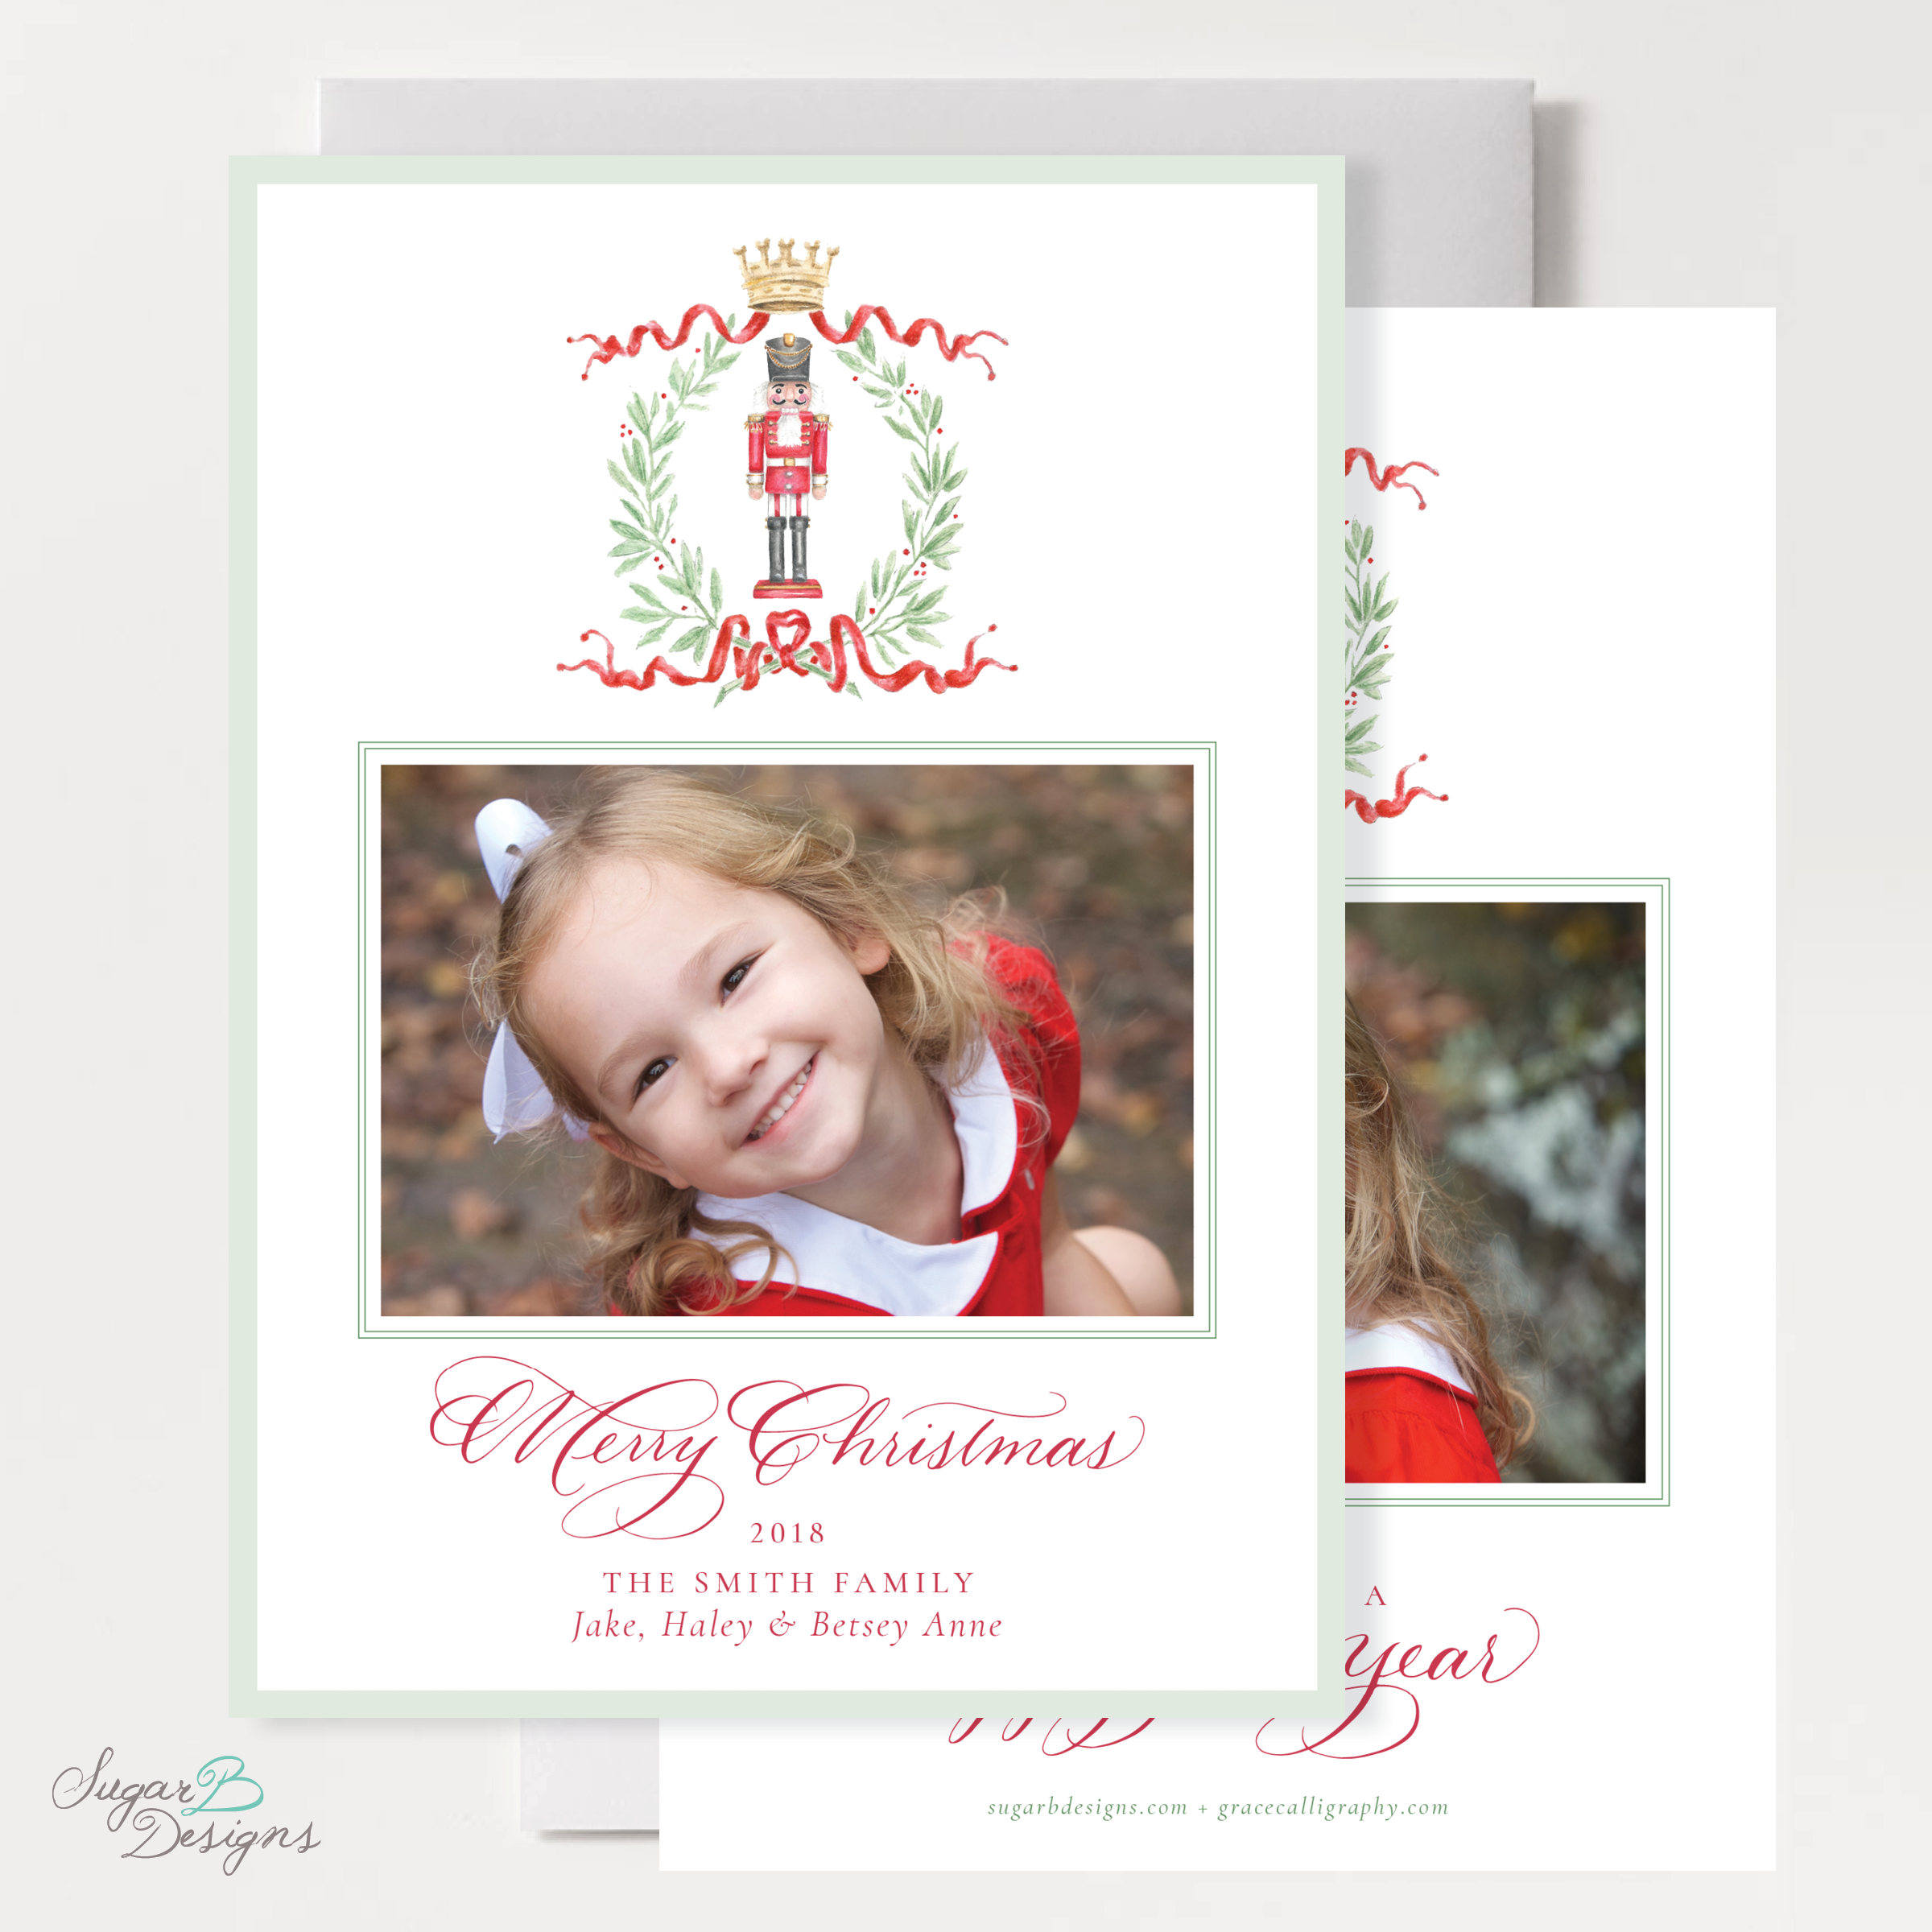 Nutcracker Royal Wreath front + back Christmas Card by Sugar B Designs.png